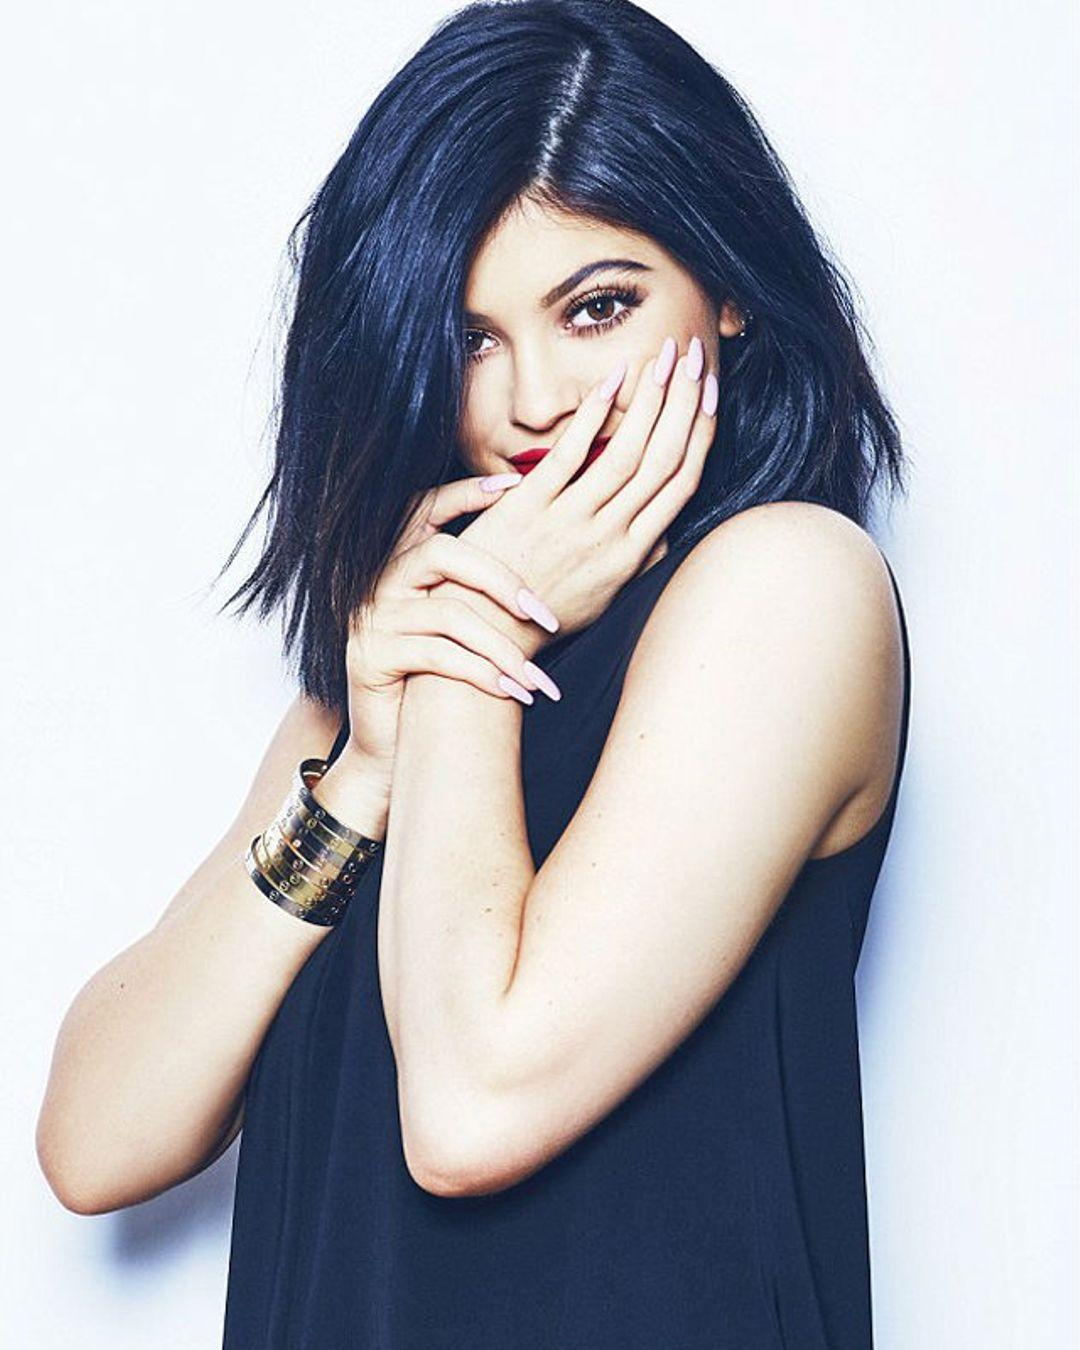 Kylie Jenner Wallpapers 2016